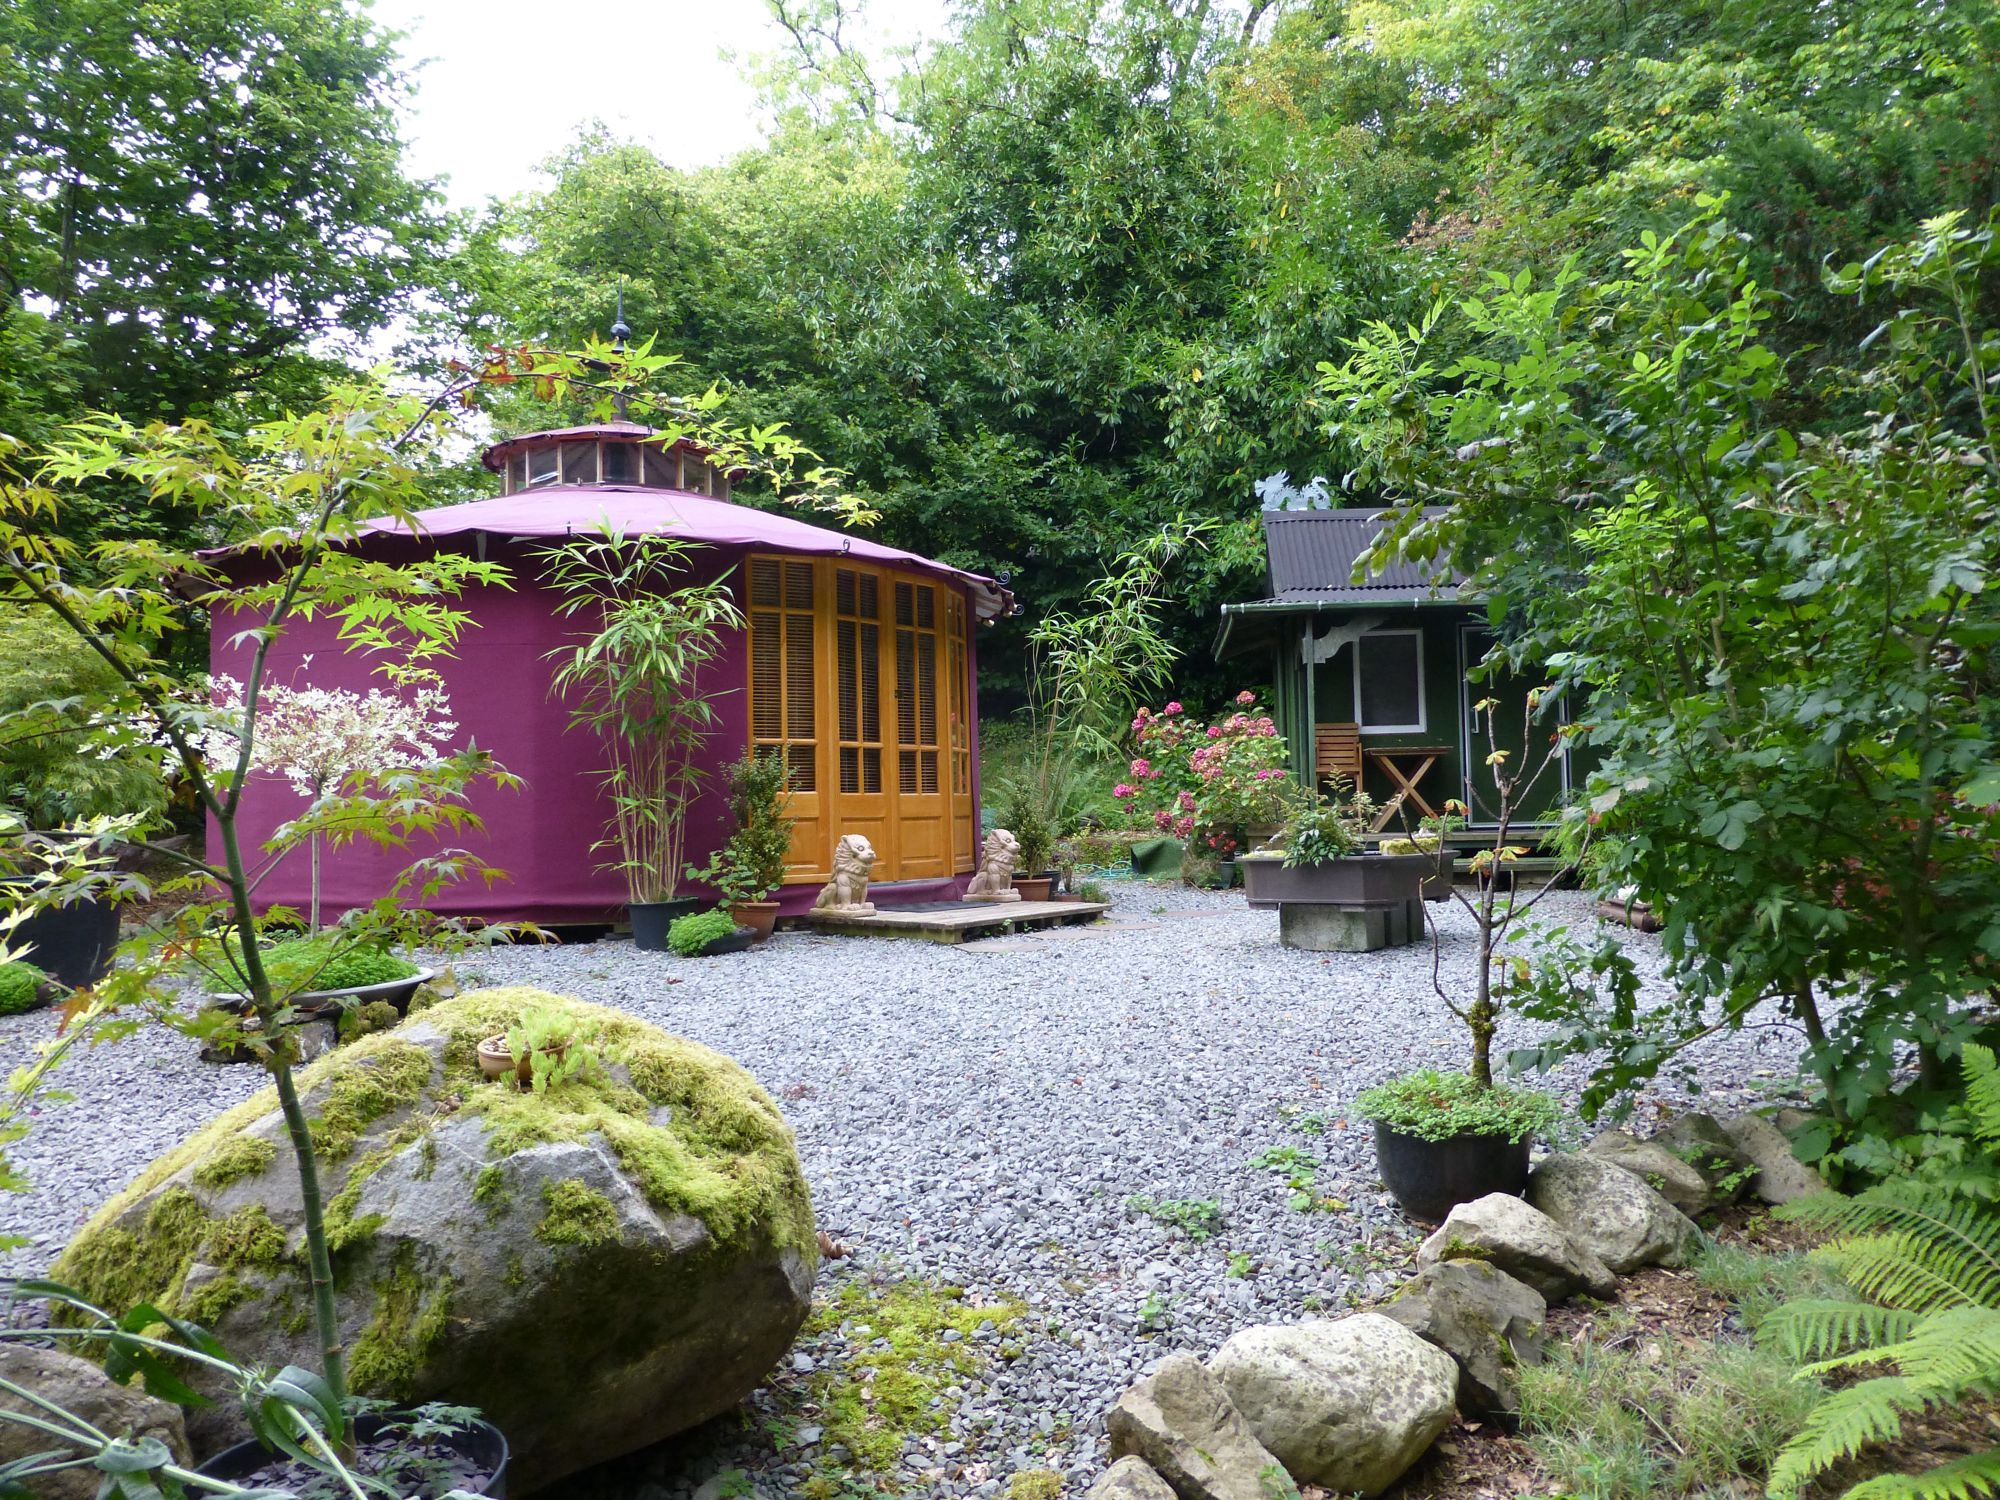 Glamping in Carmarthenshire – The best glampsites in Carmarthenshire